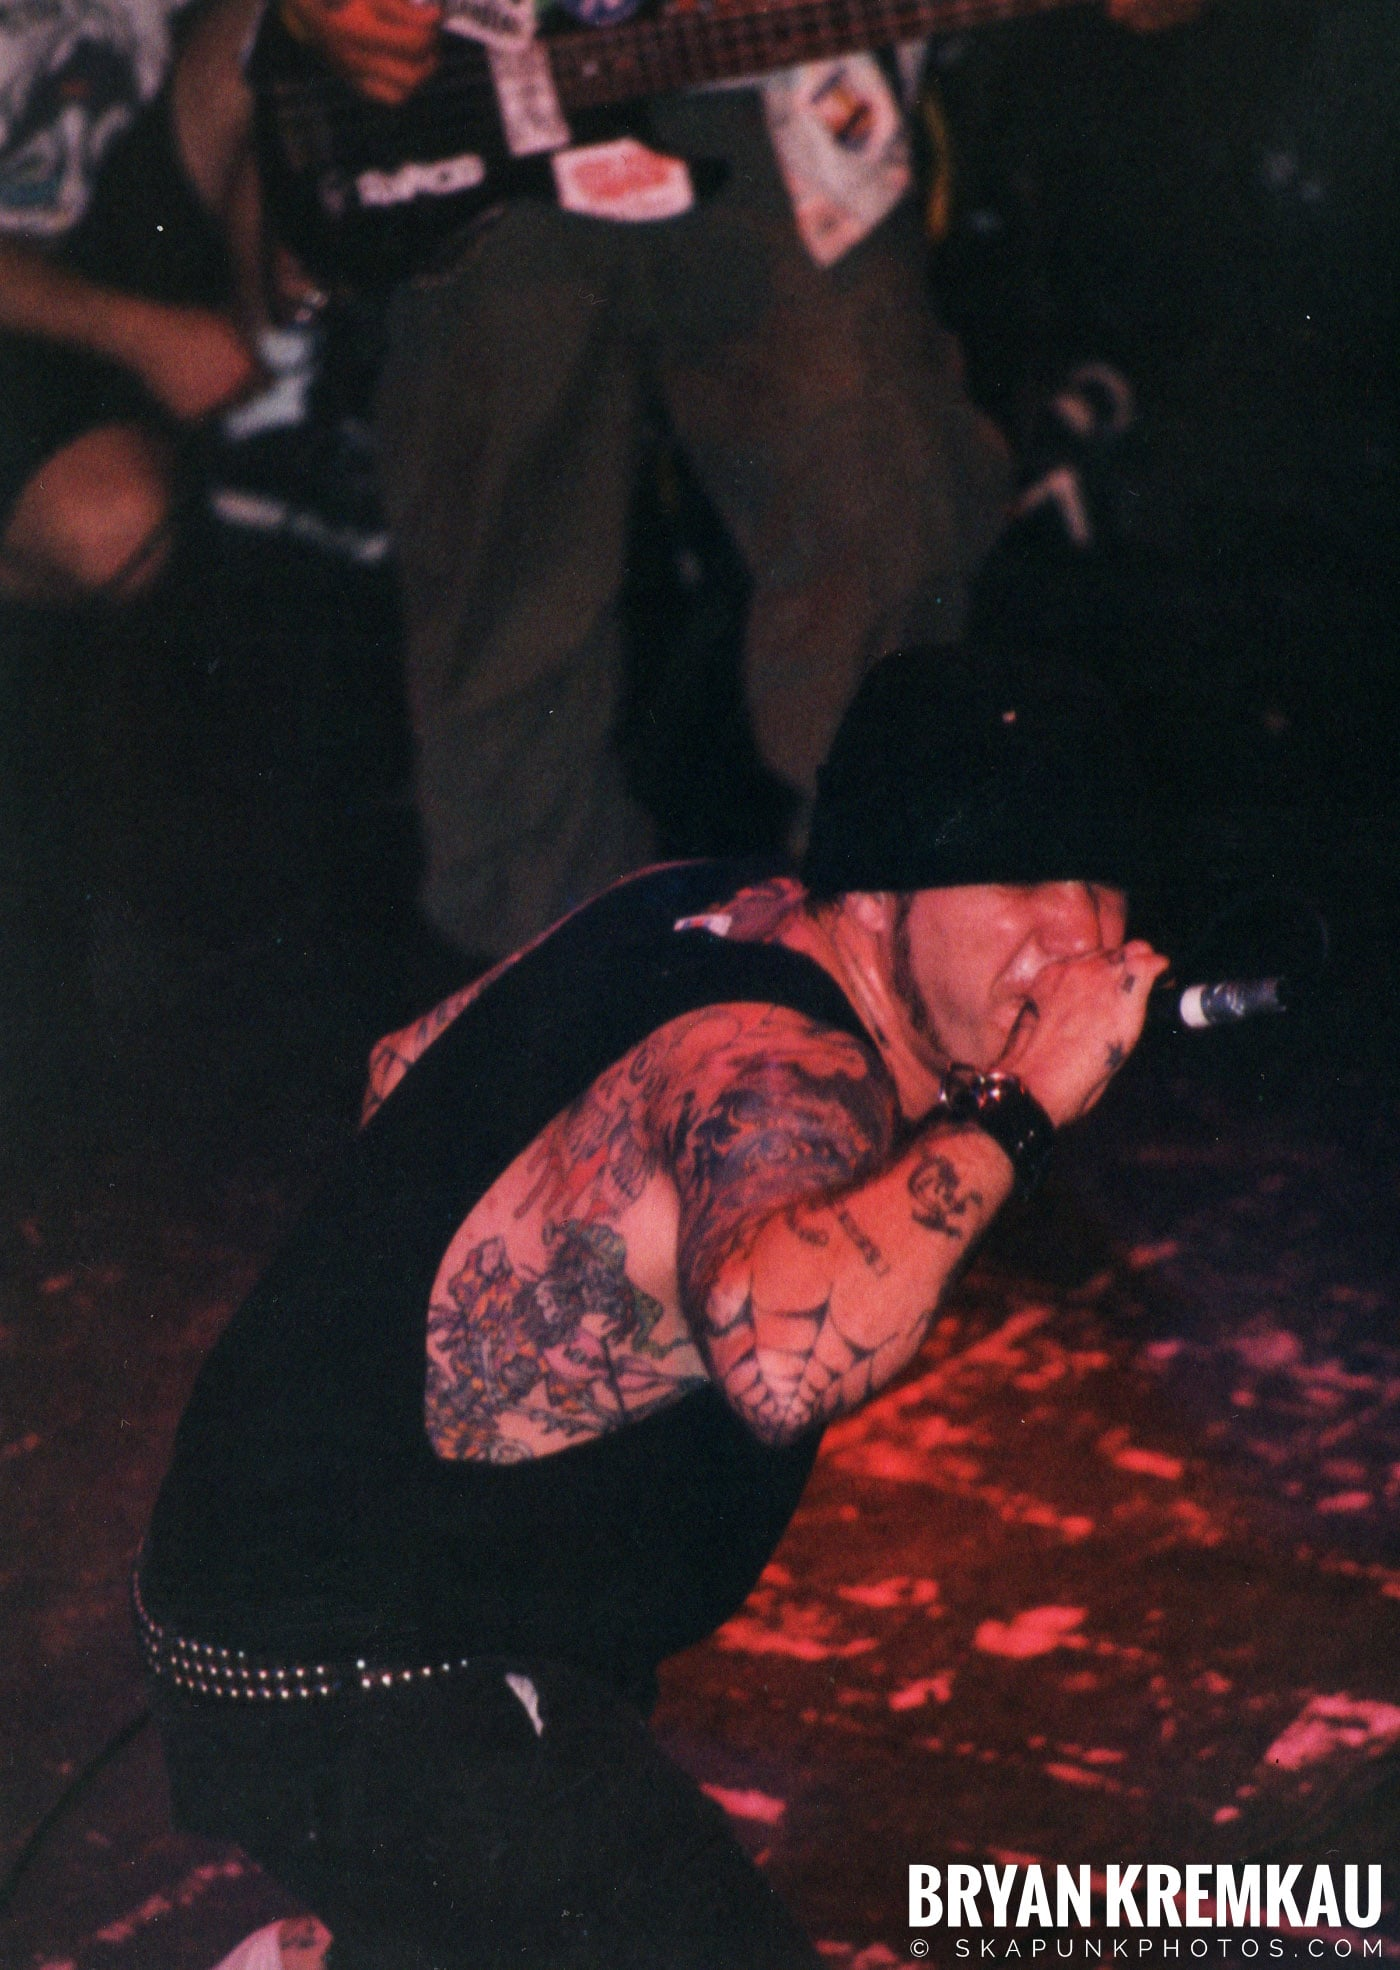 Agnostic Front @ The Chance, Poughkeepsie, NY - 10.31.98 (7)